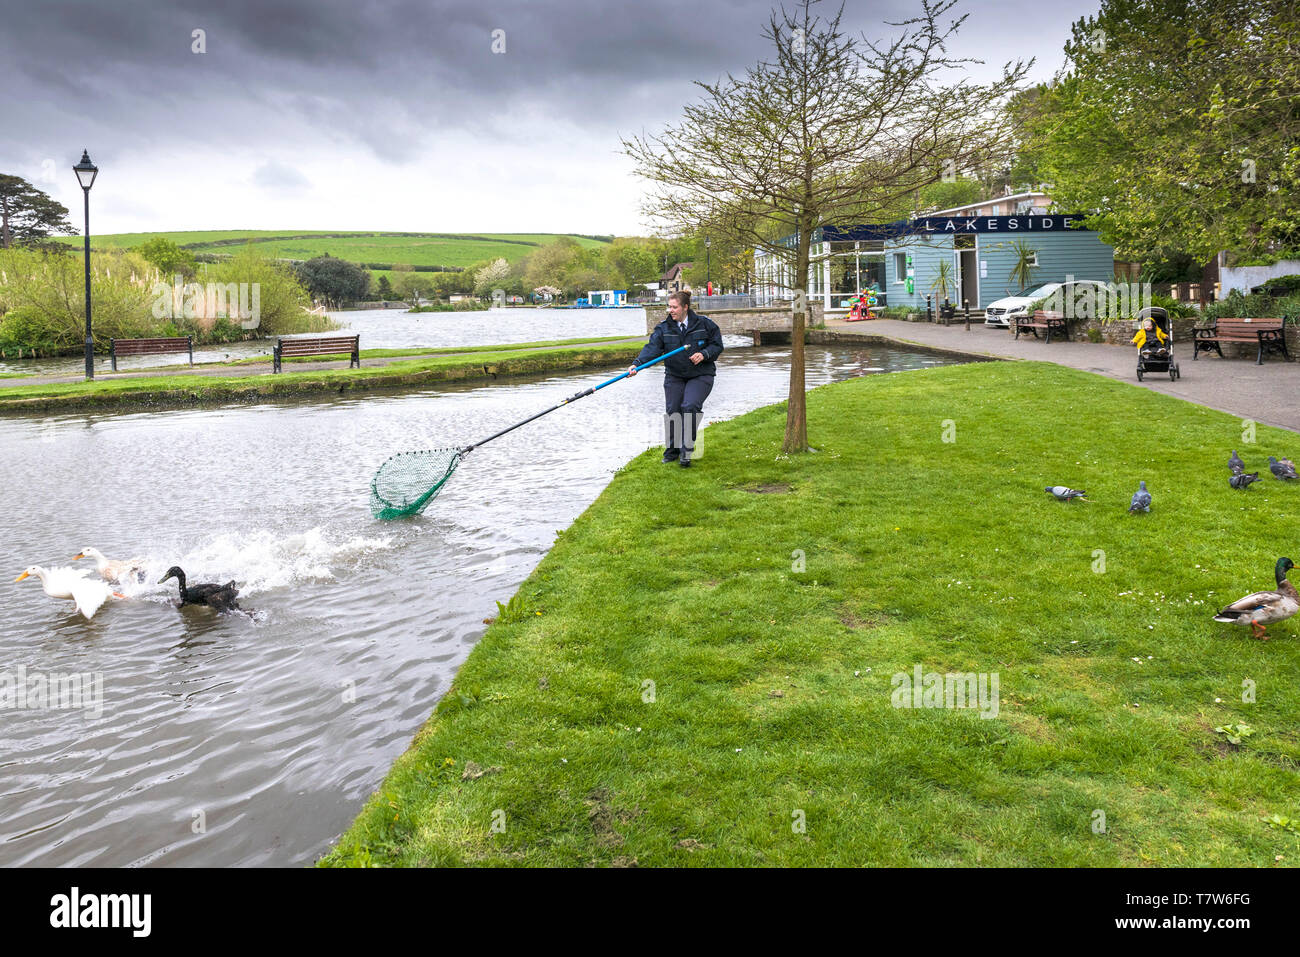 An RSPCA Animal Collections Officer attempting to catch an injured duck with a net in Newquay in Cornwall. Stock Photo